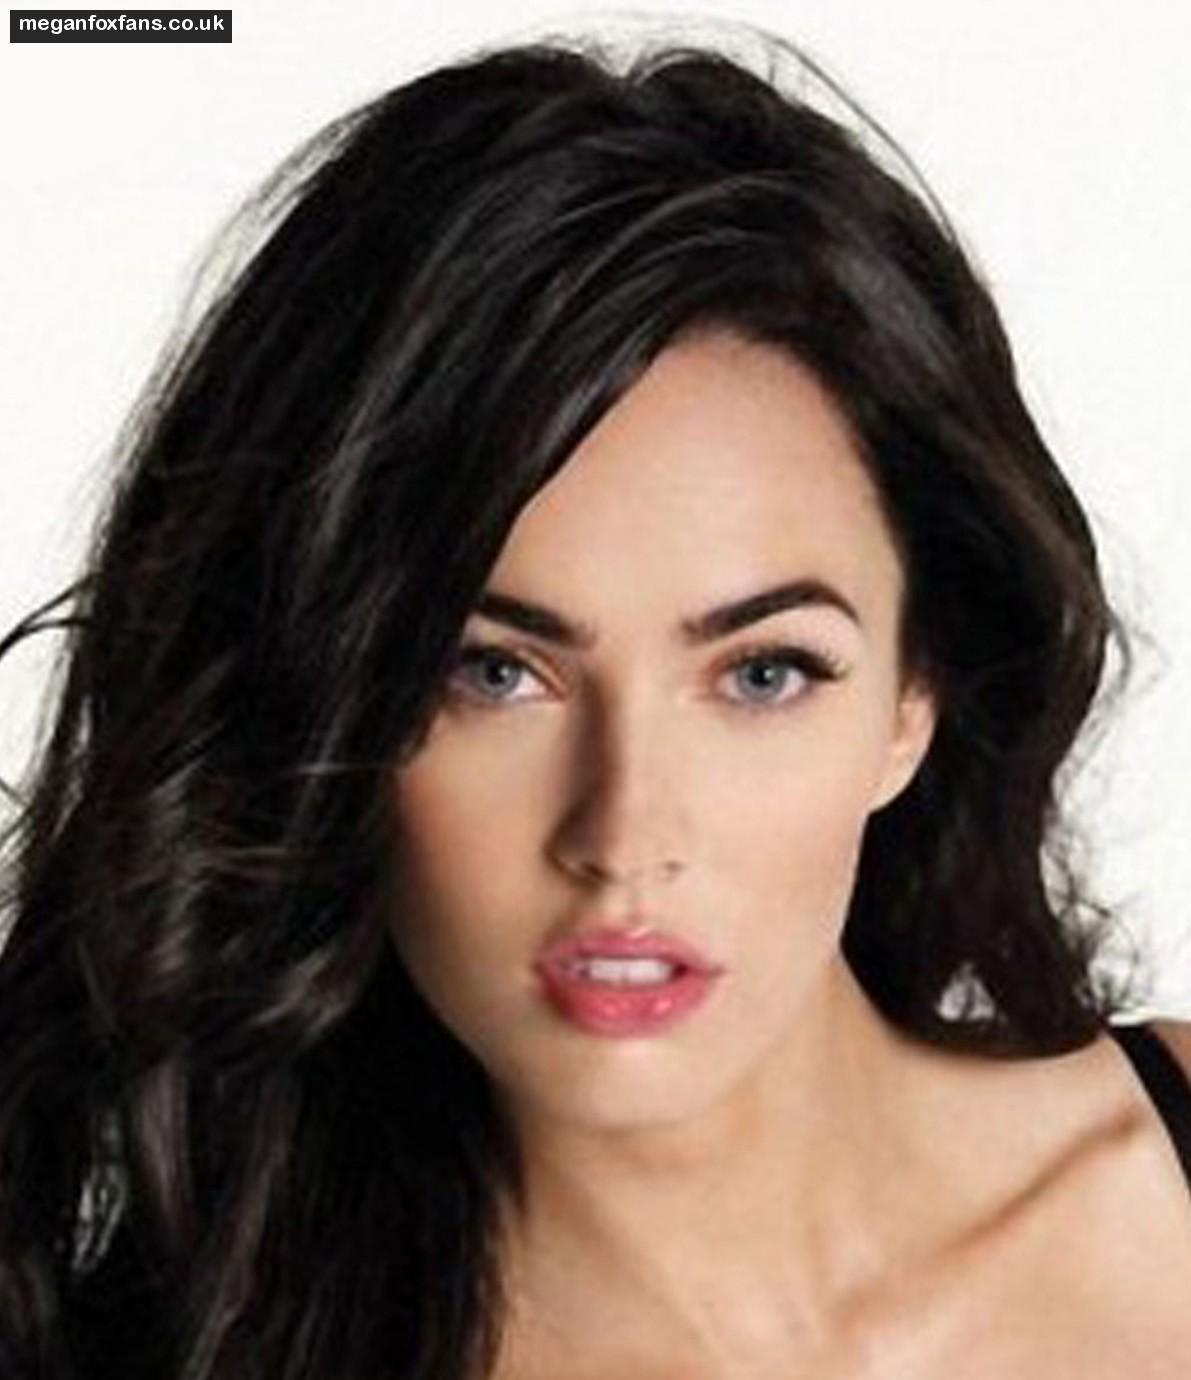 Megan Fox: Funny Image Collection: Megan Fox's Tattoo Of The Quote